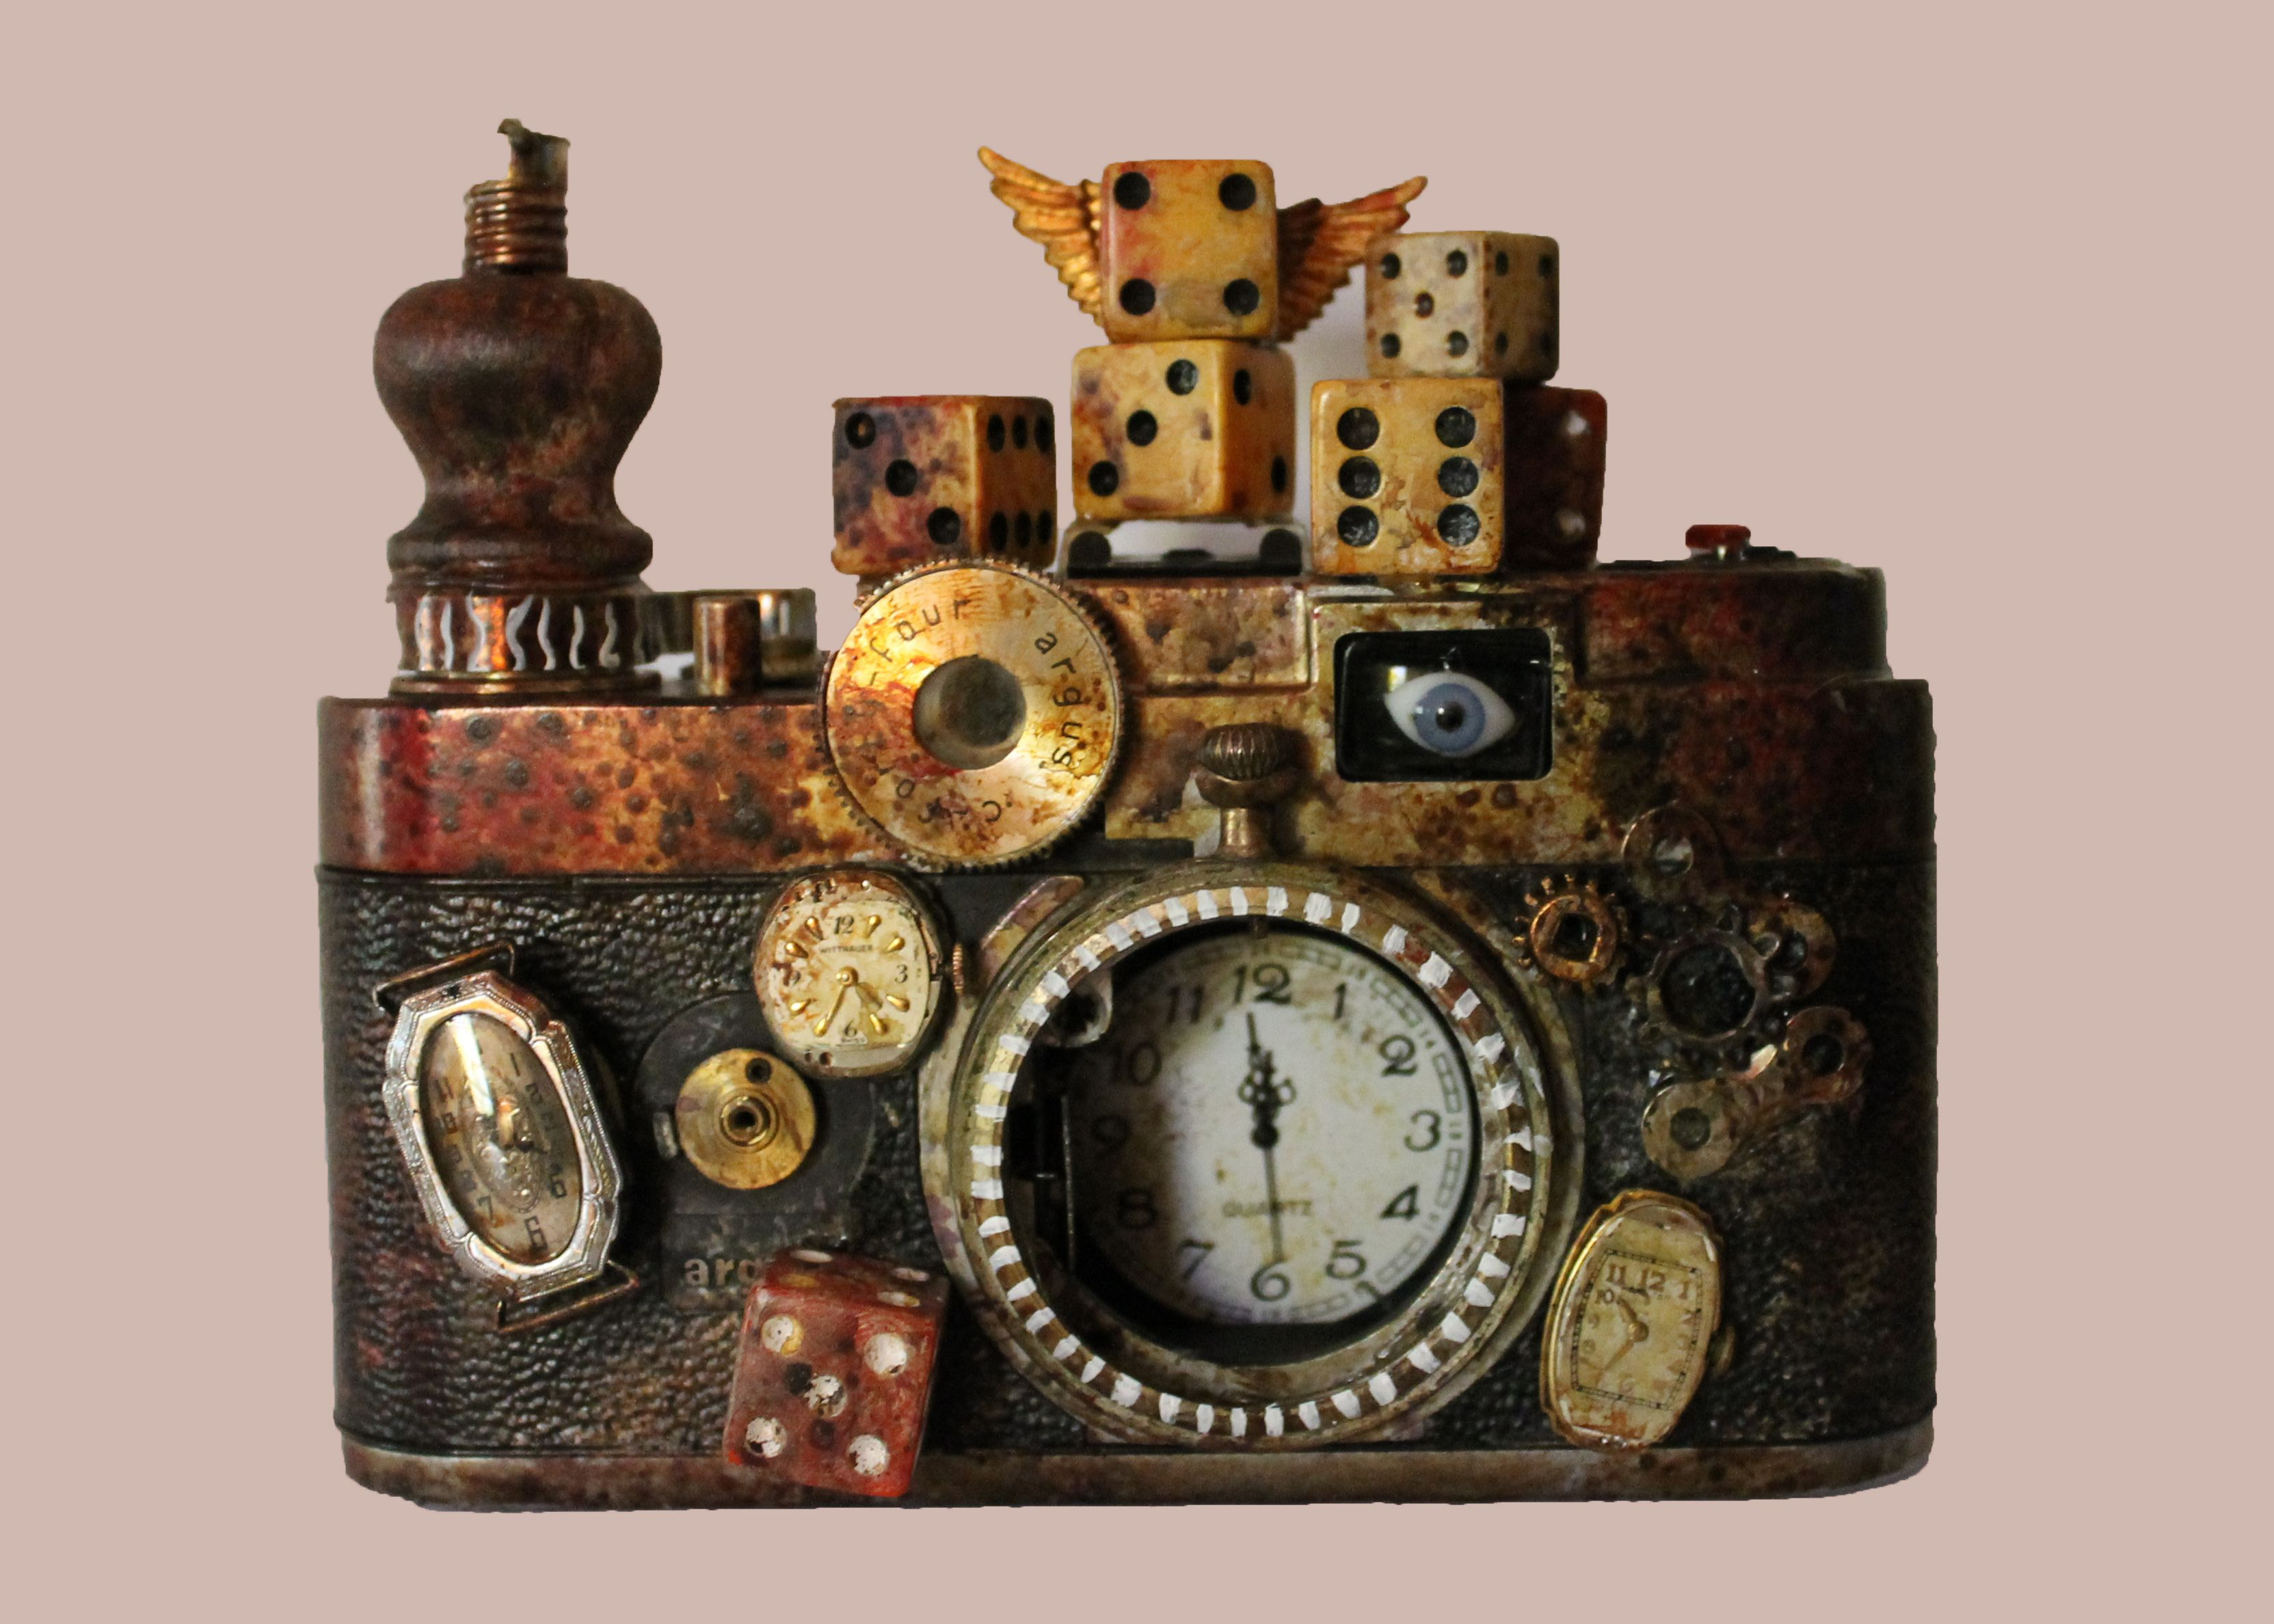 A Snapshot in Time - mixed media assemblage of camera body, watch parts, lucky dice